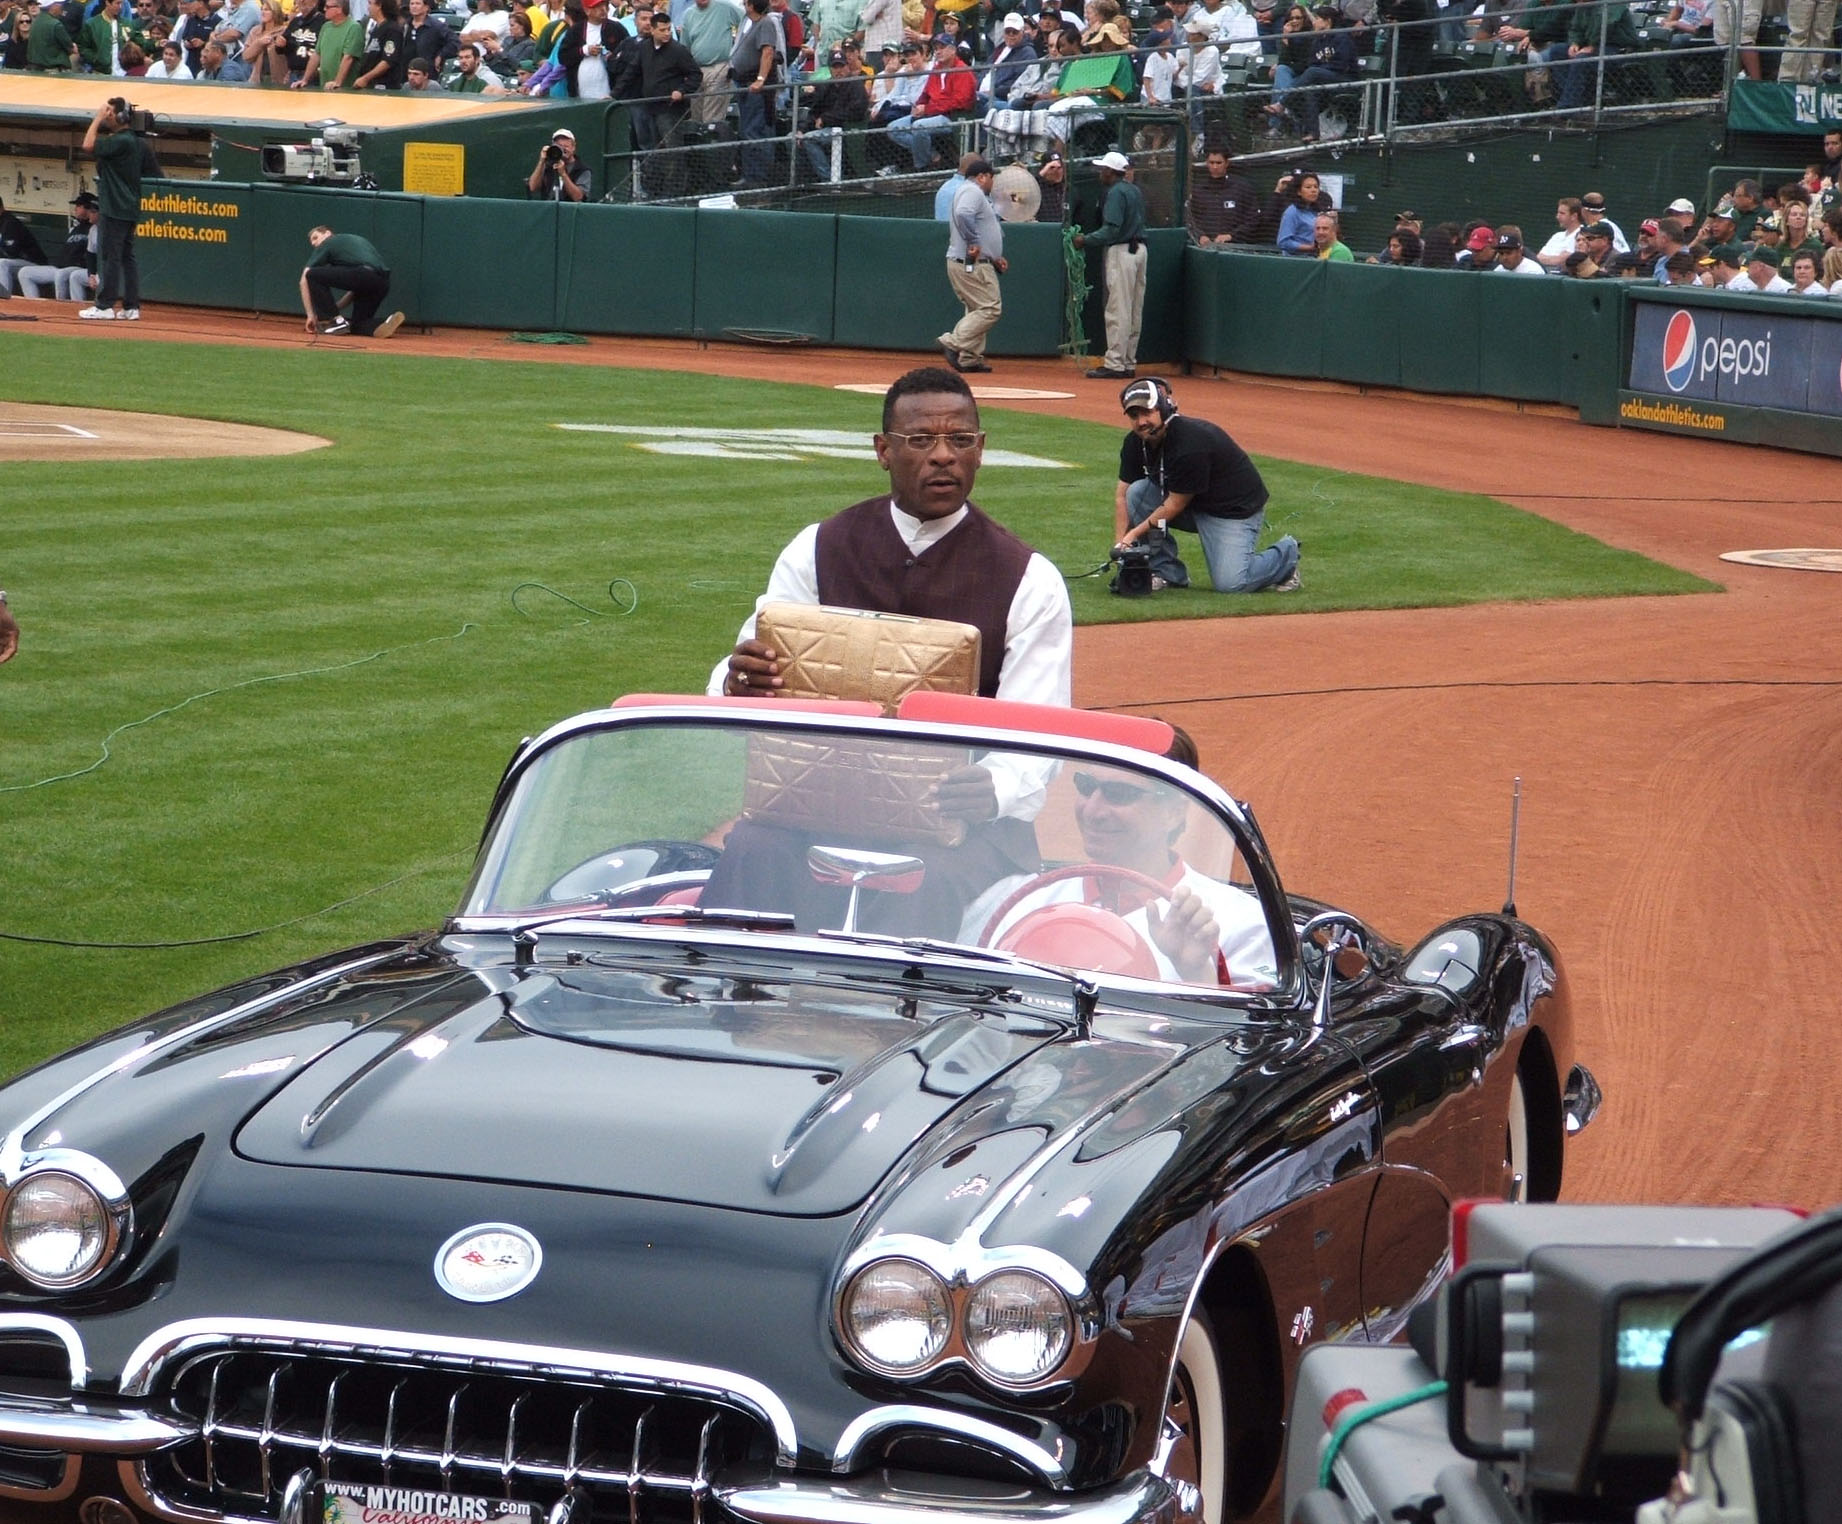 Rickey riding in car with gold base - cropped.jpg